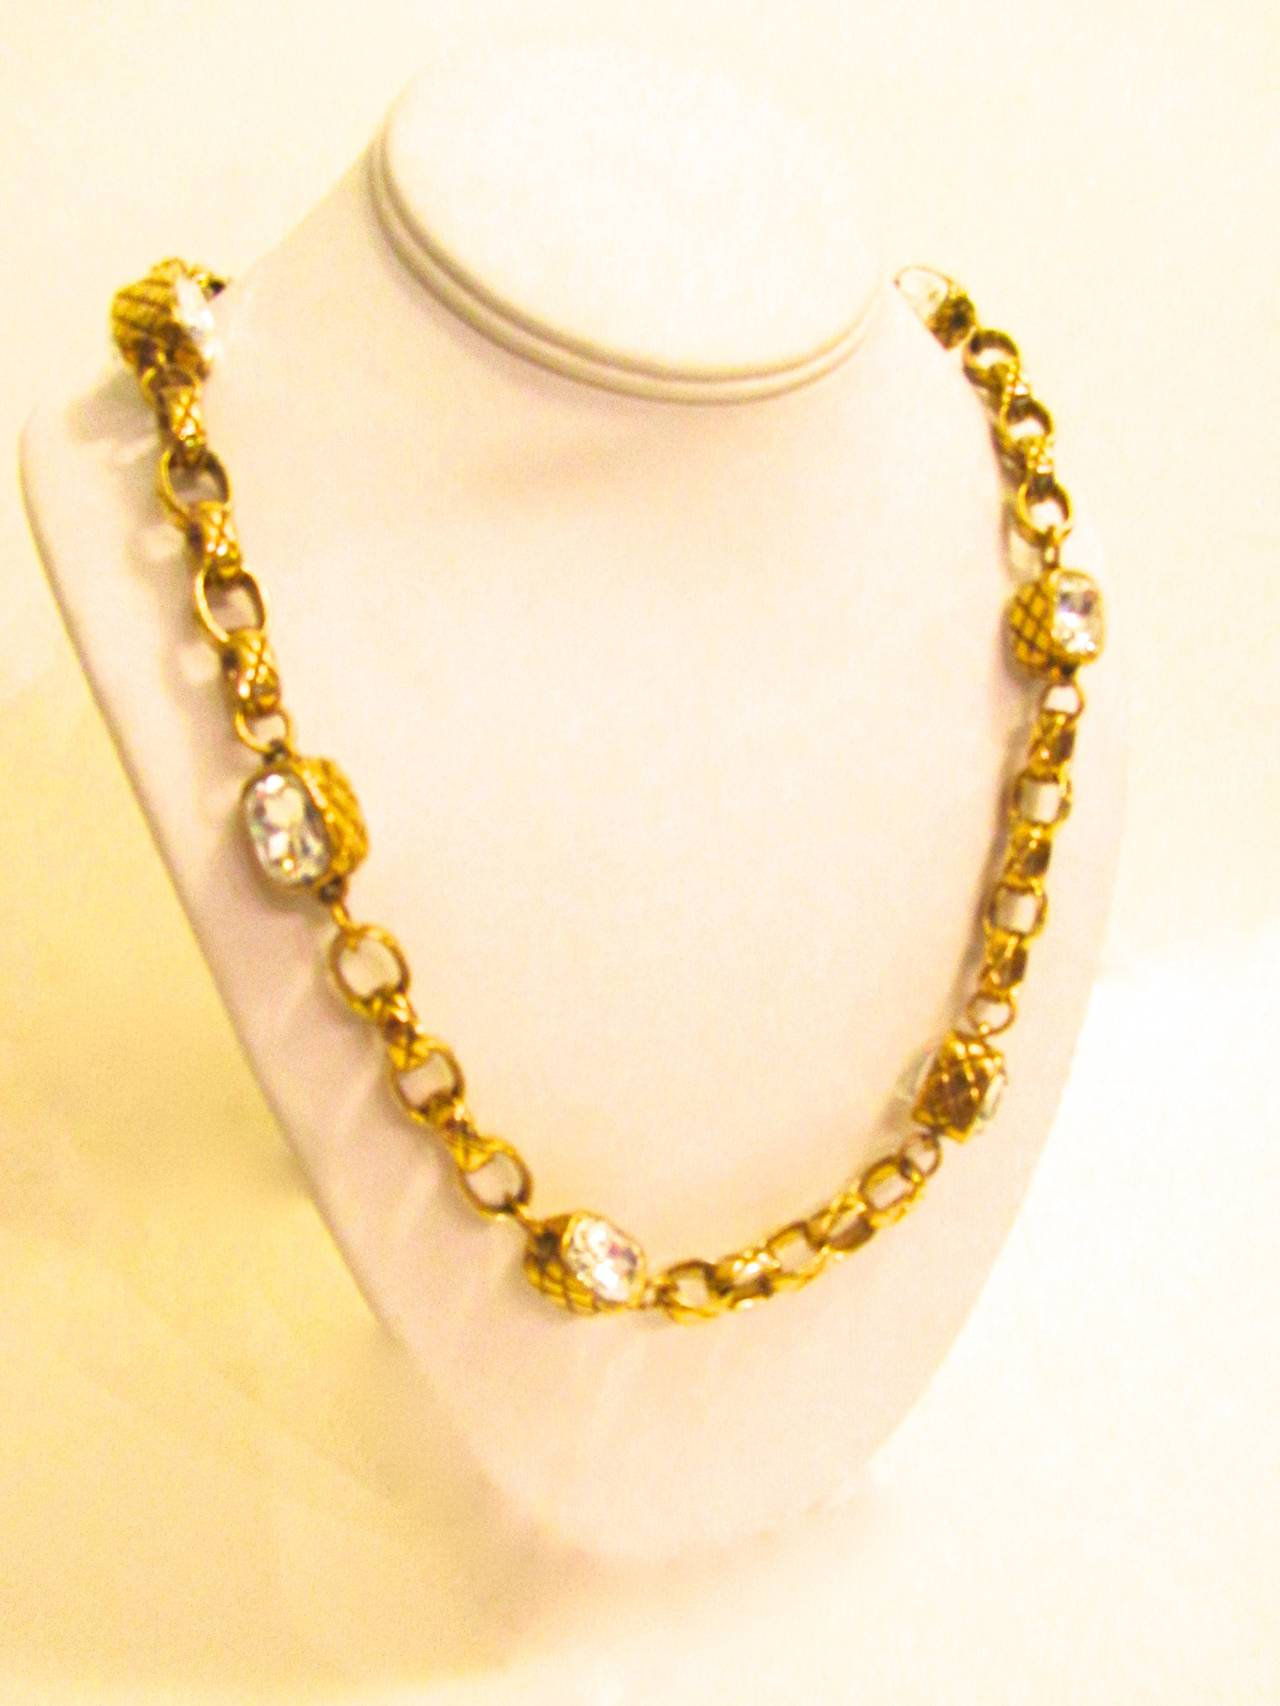 Rare 1980's Chanel gold-toned necklace with matelasse pattern engraved onto chain. Strass faceted crystals inlayed throughout the chain. Clear logo engraved onto one of the links of the chain. 